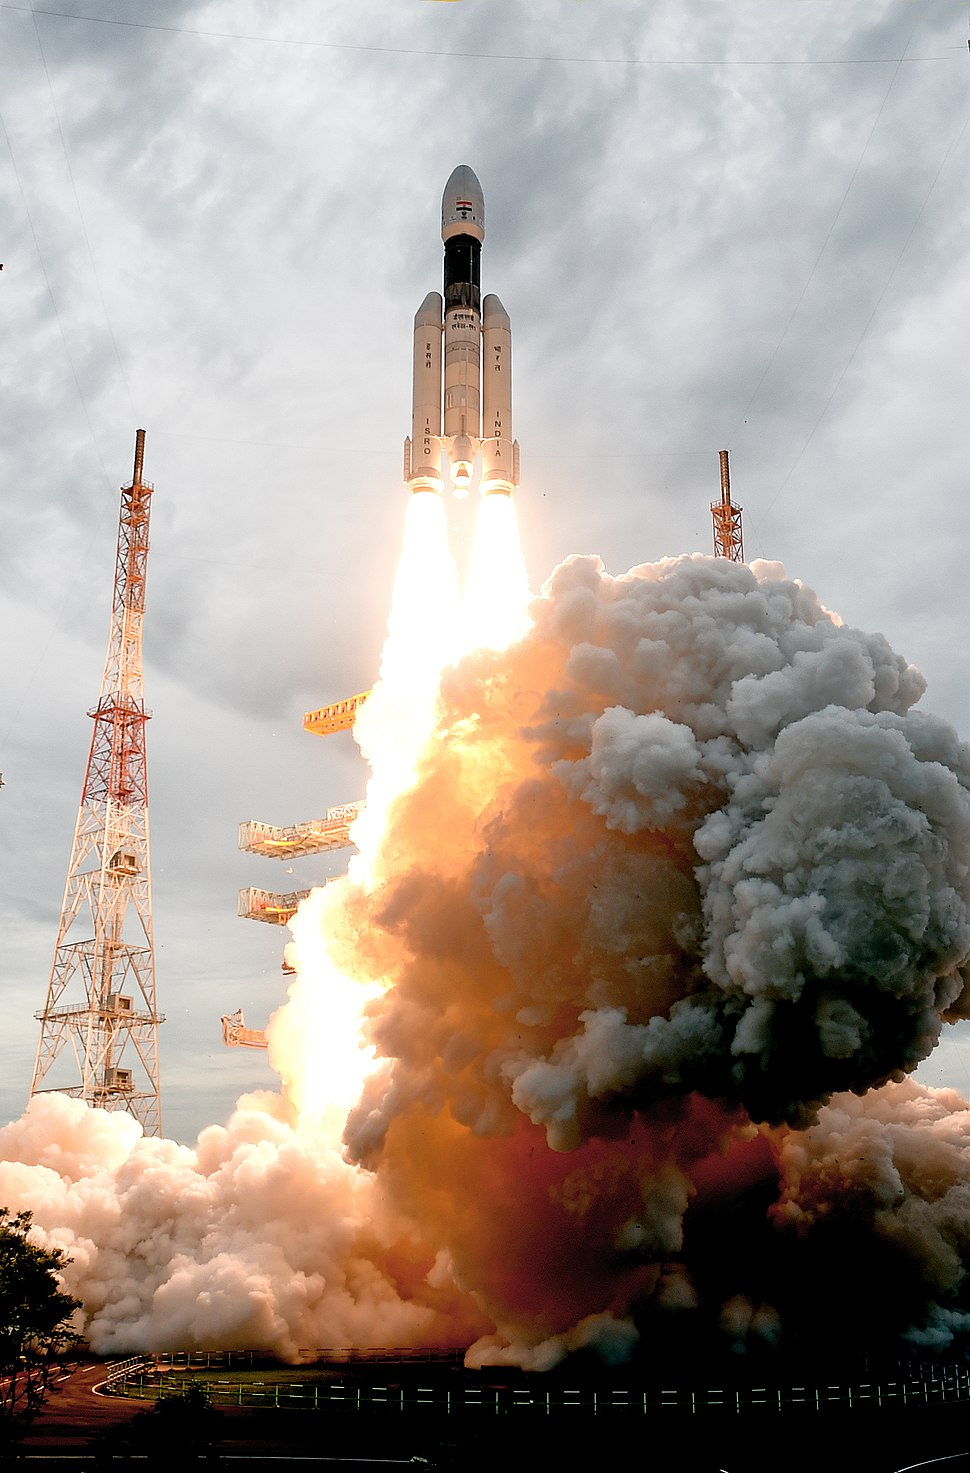 GSLV Mk III M1, Chandrayaan-2 Lifting off 04